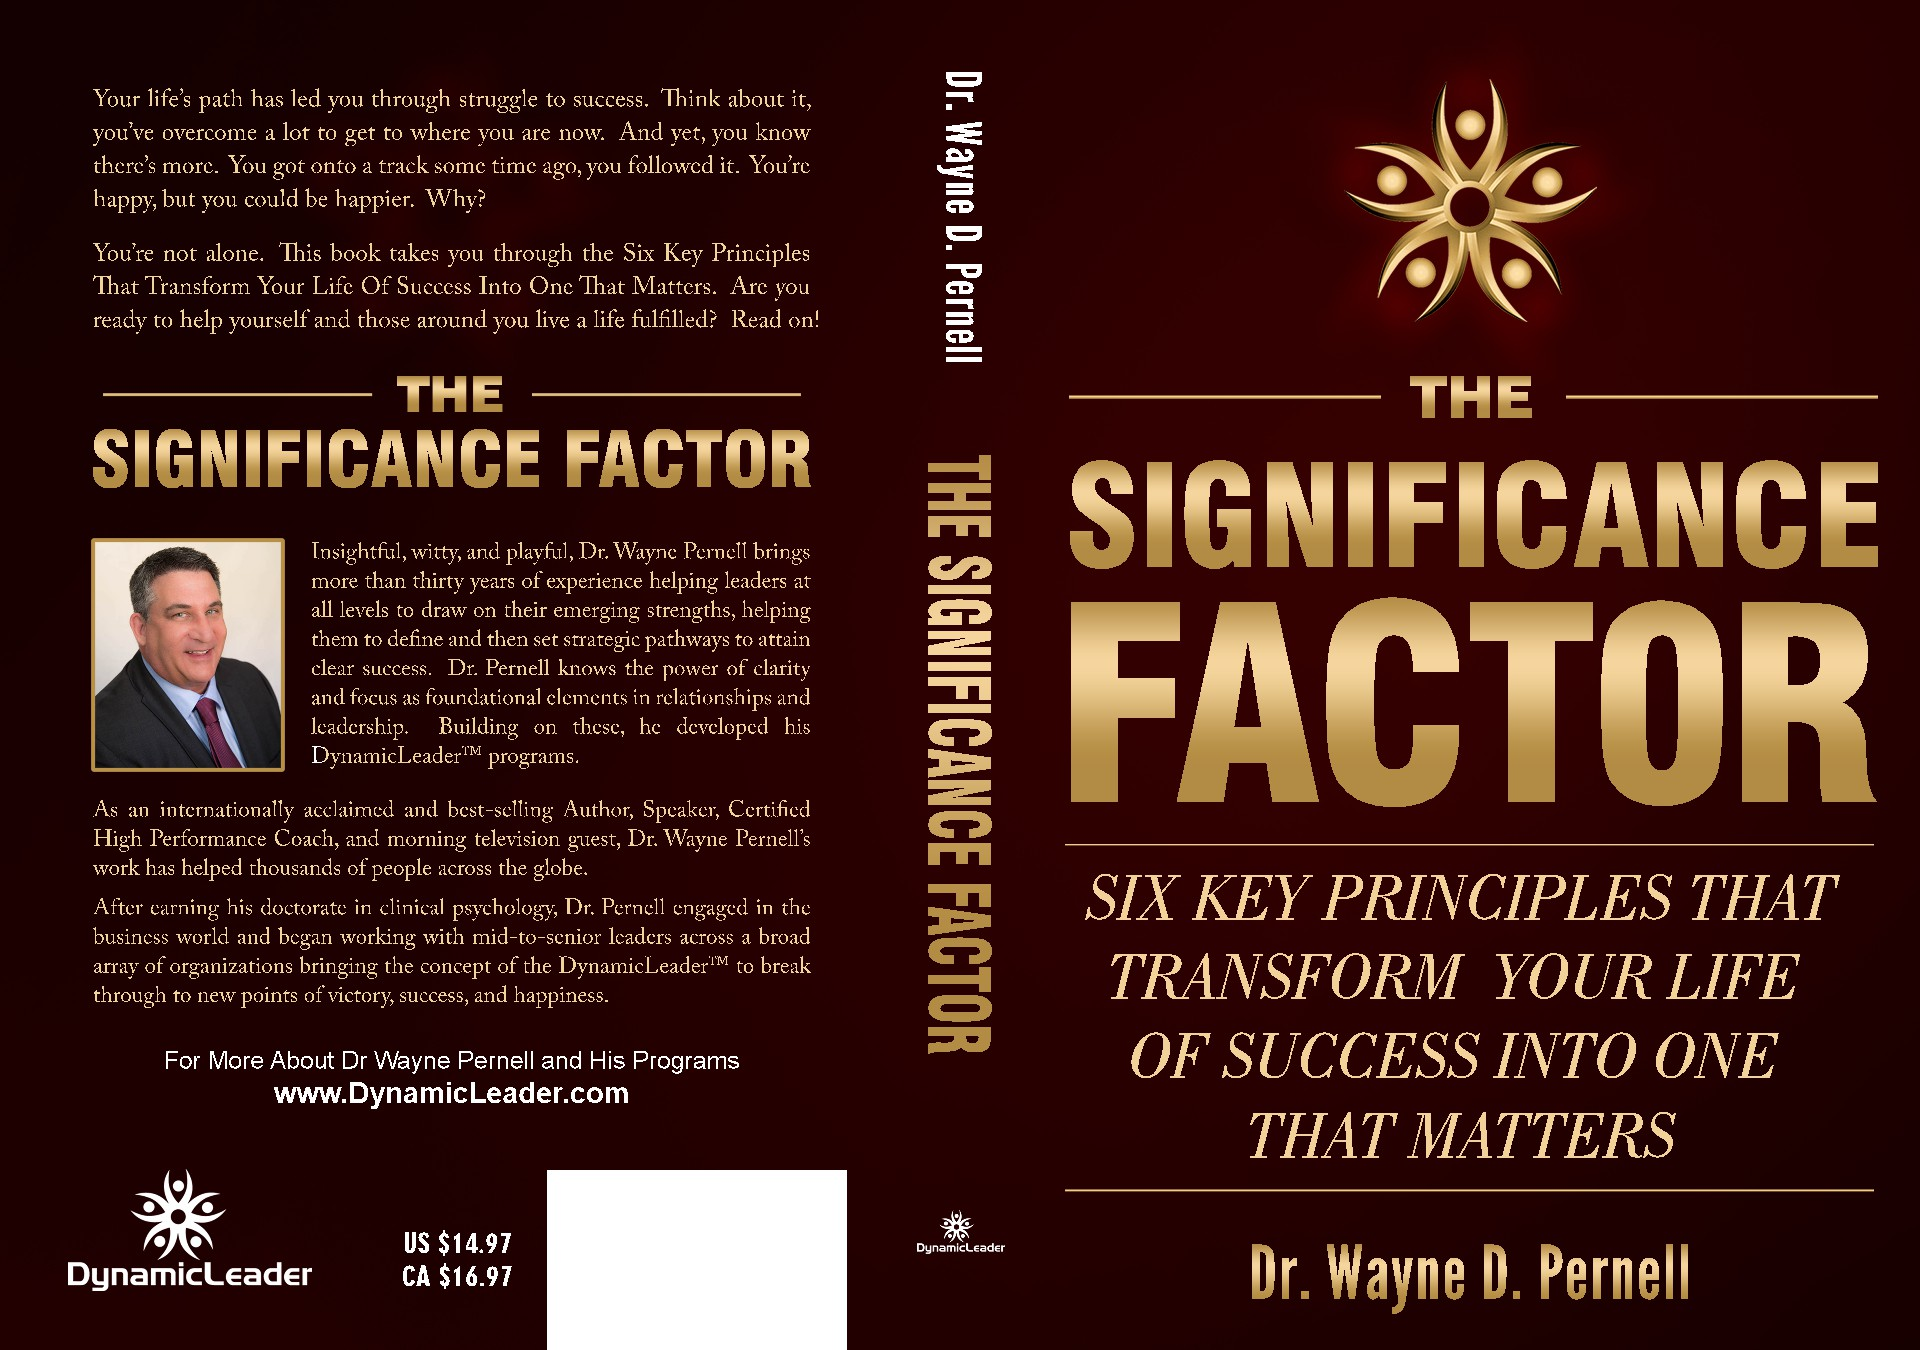 Create a book cover for The Significance Factor and get your work seen on Amazon!